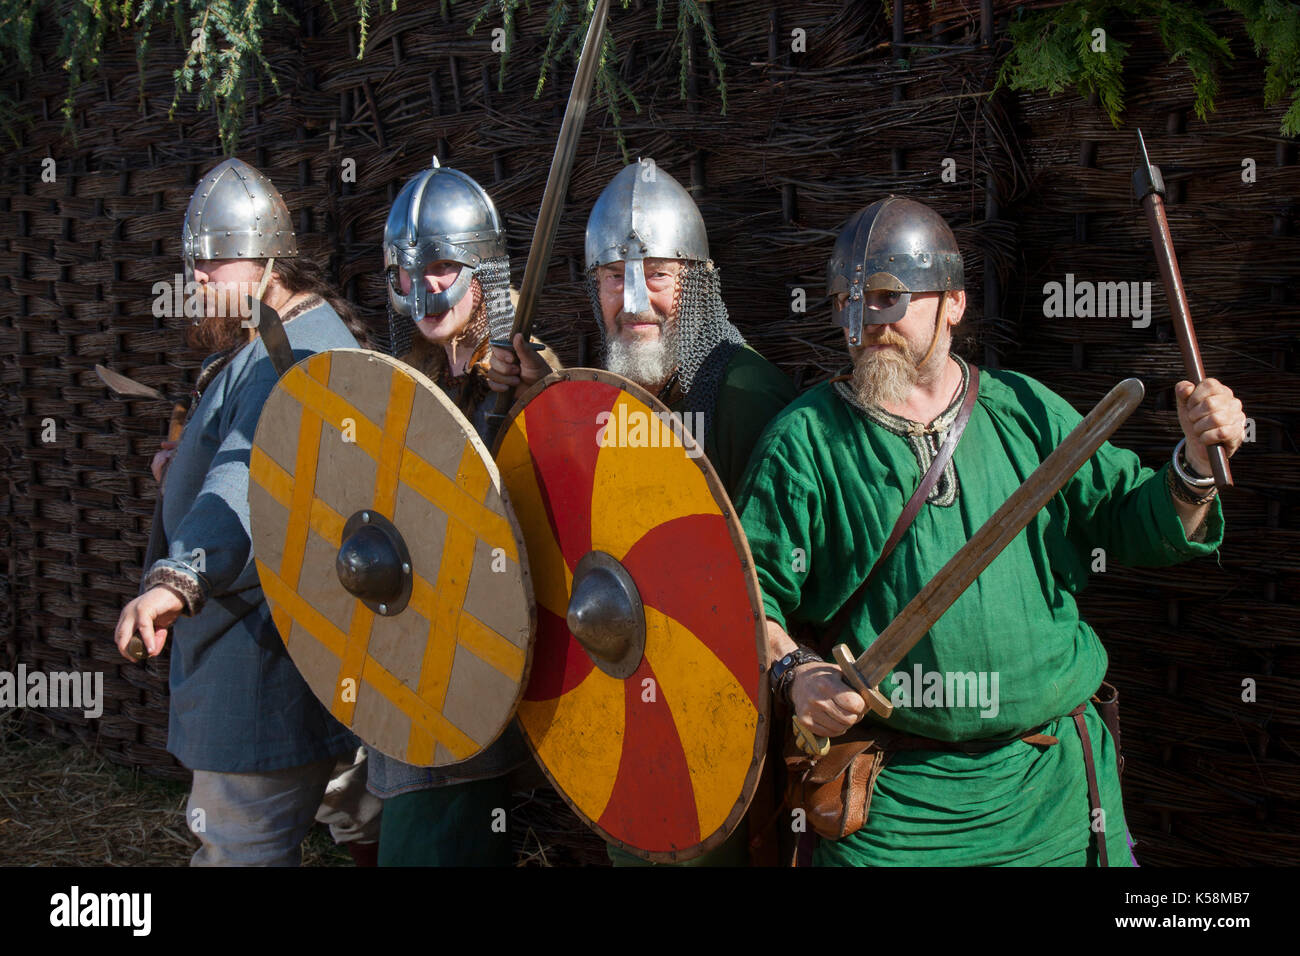 King With Sword And Shield Stock Photos Amp King With Sword